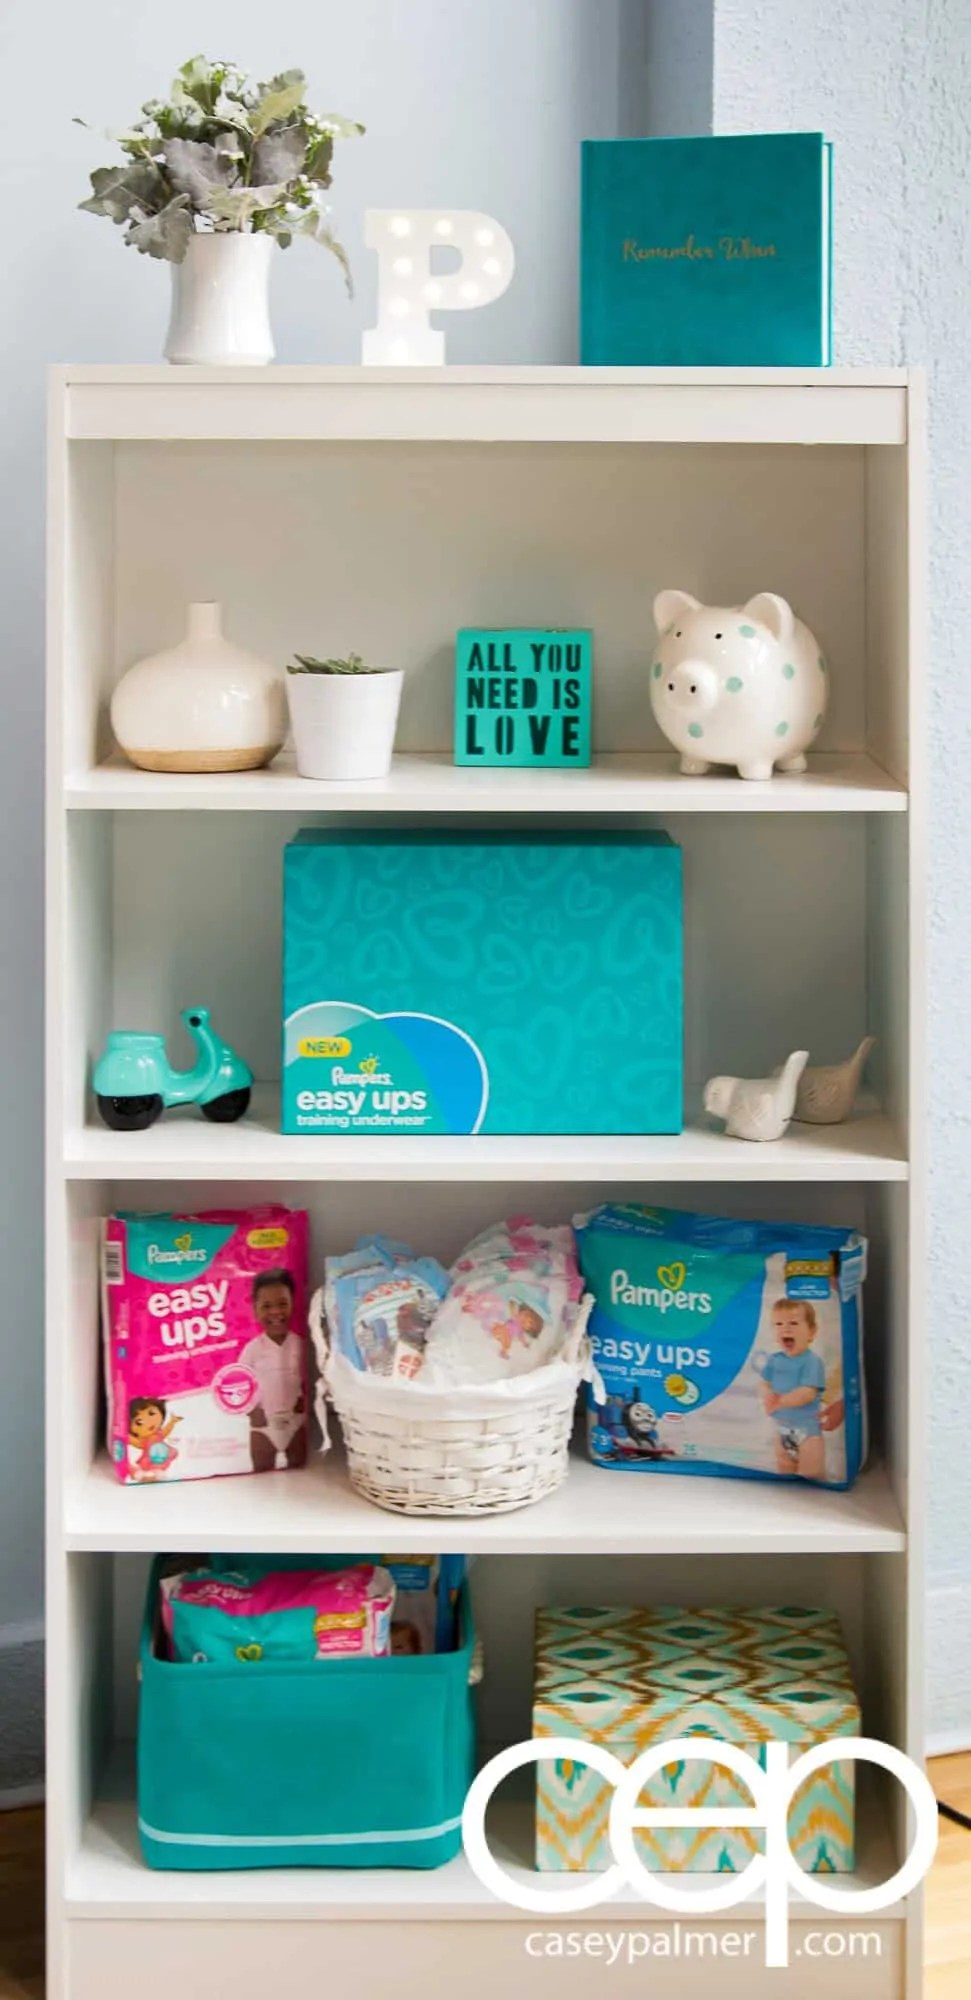 Level Ups with Pampers Easy Ups — Getting Aware of the Better Way to Underwear! — Bookshelf with Props for the Photo Station